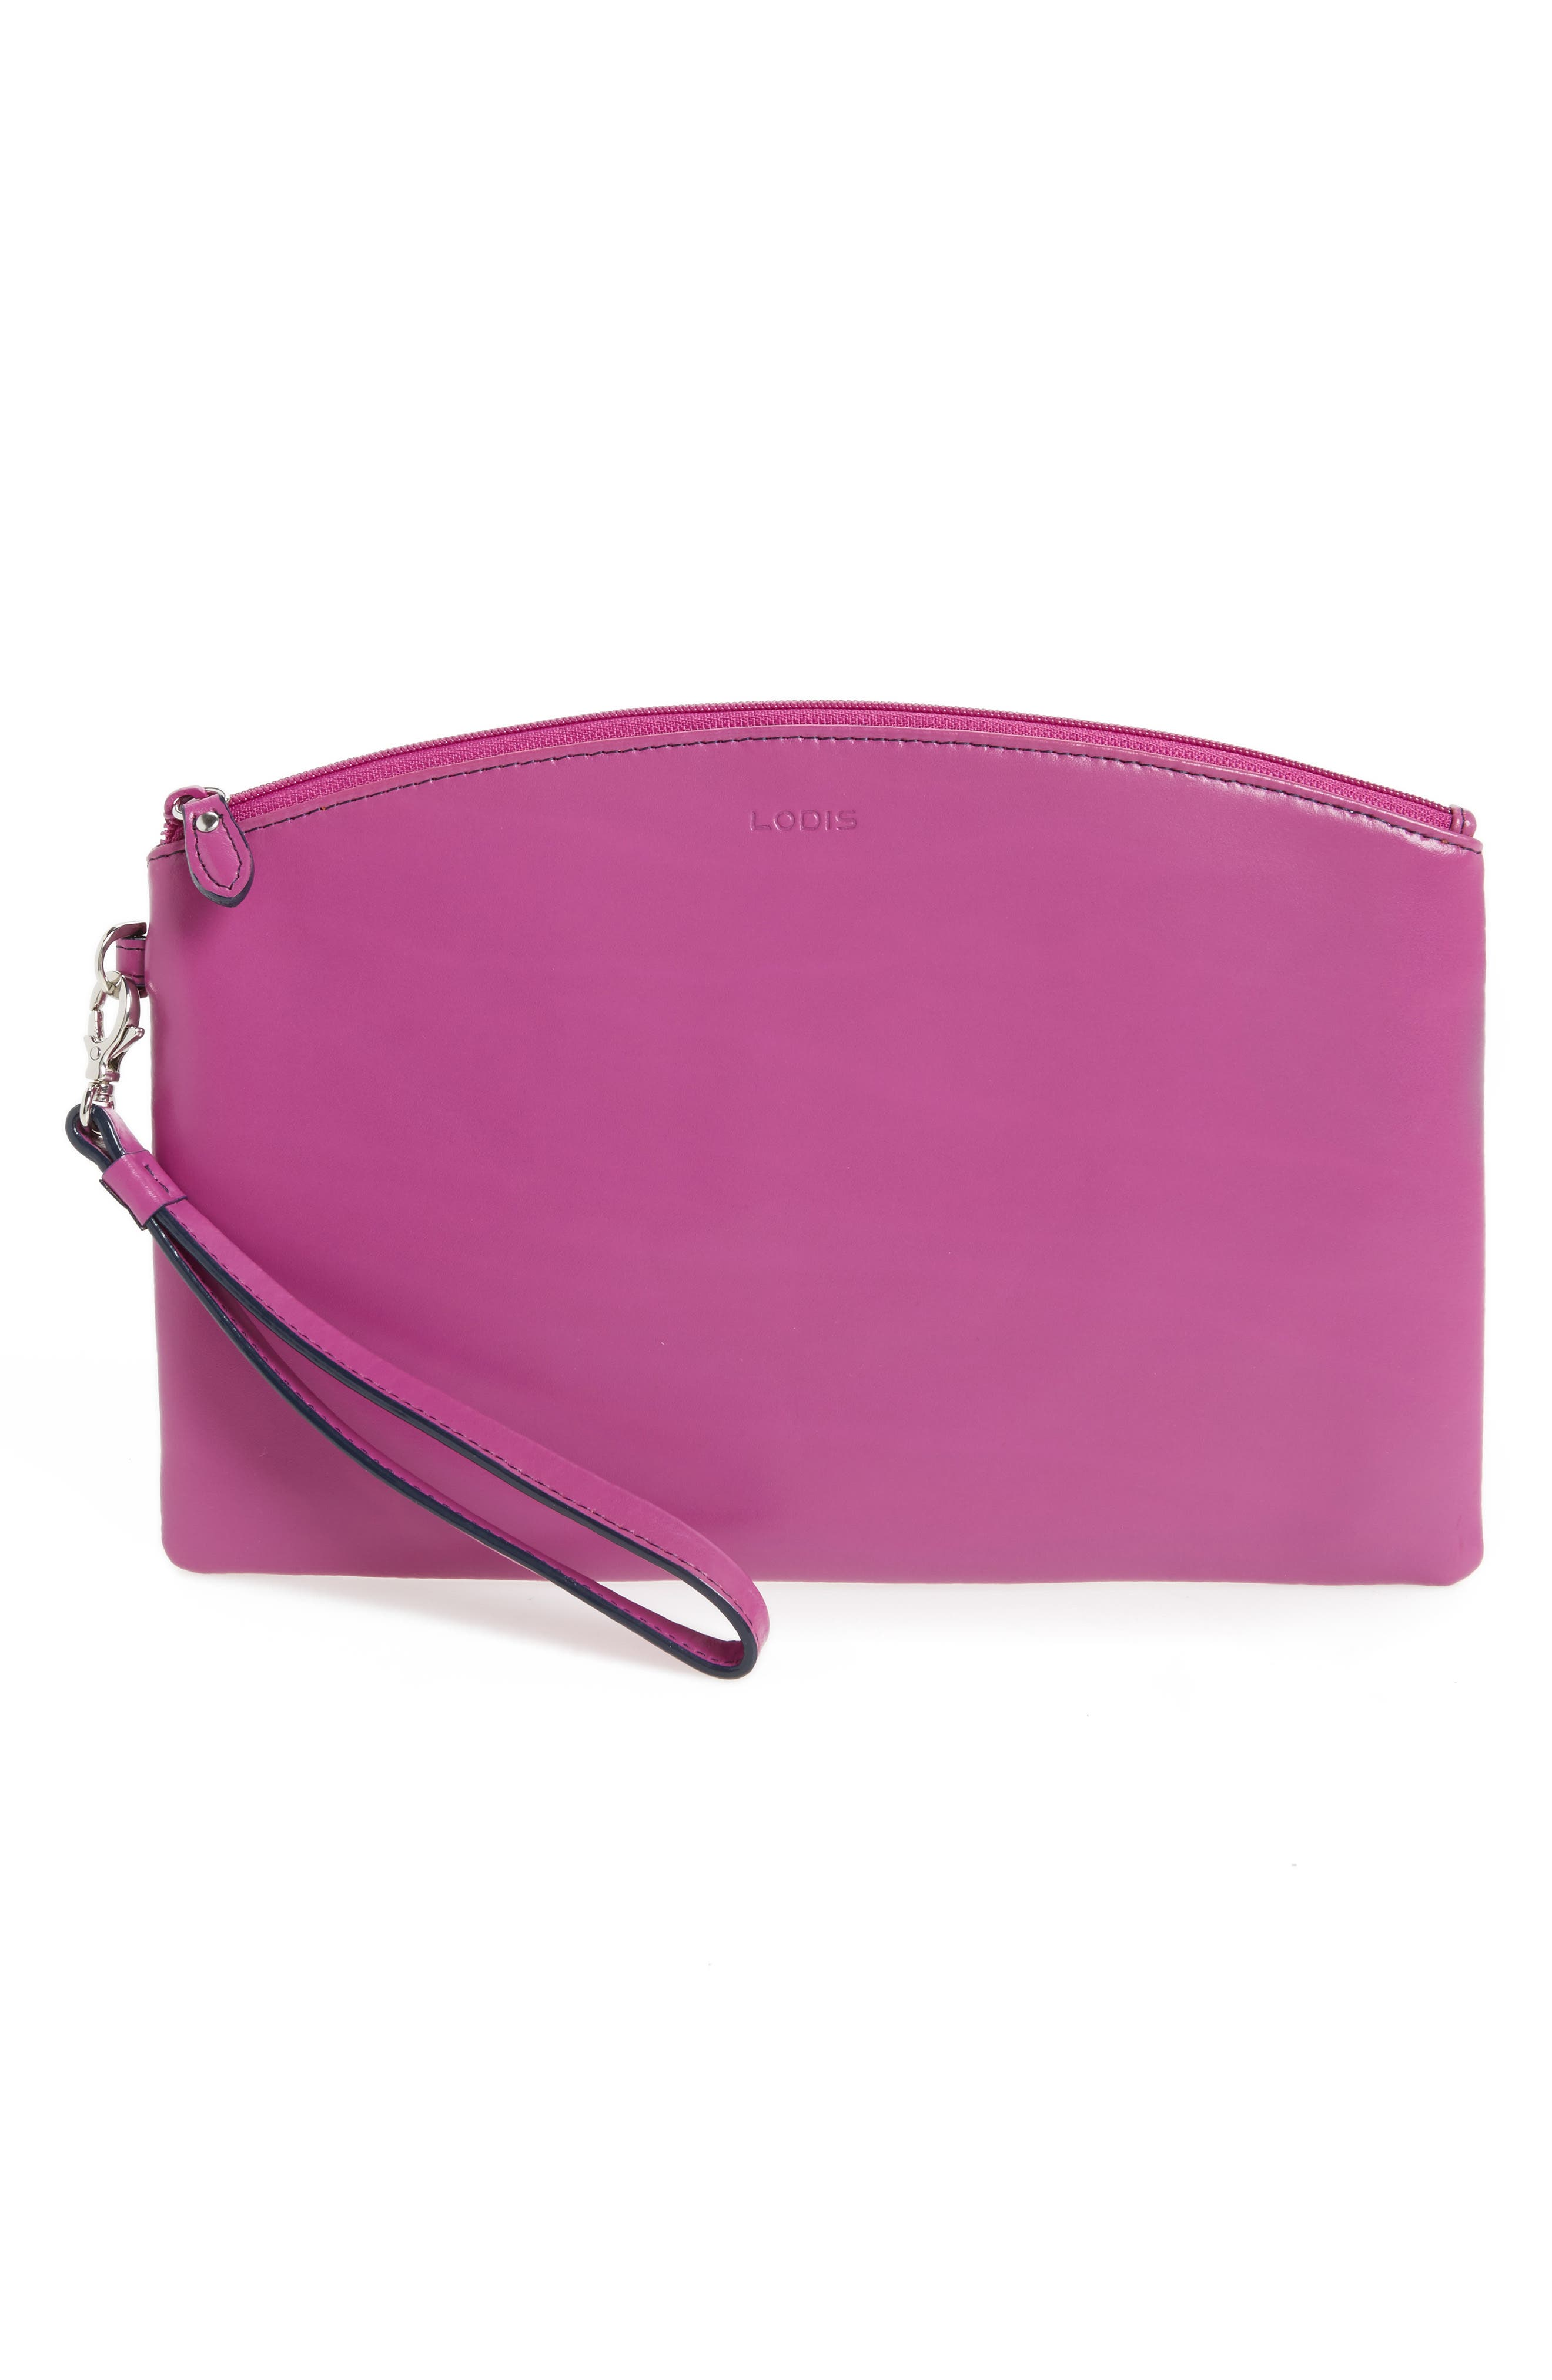 Lodis Miley Leather Wristlet